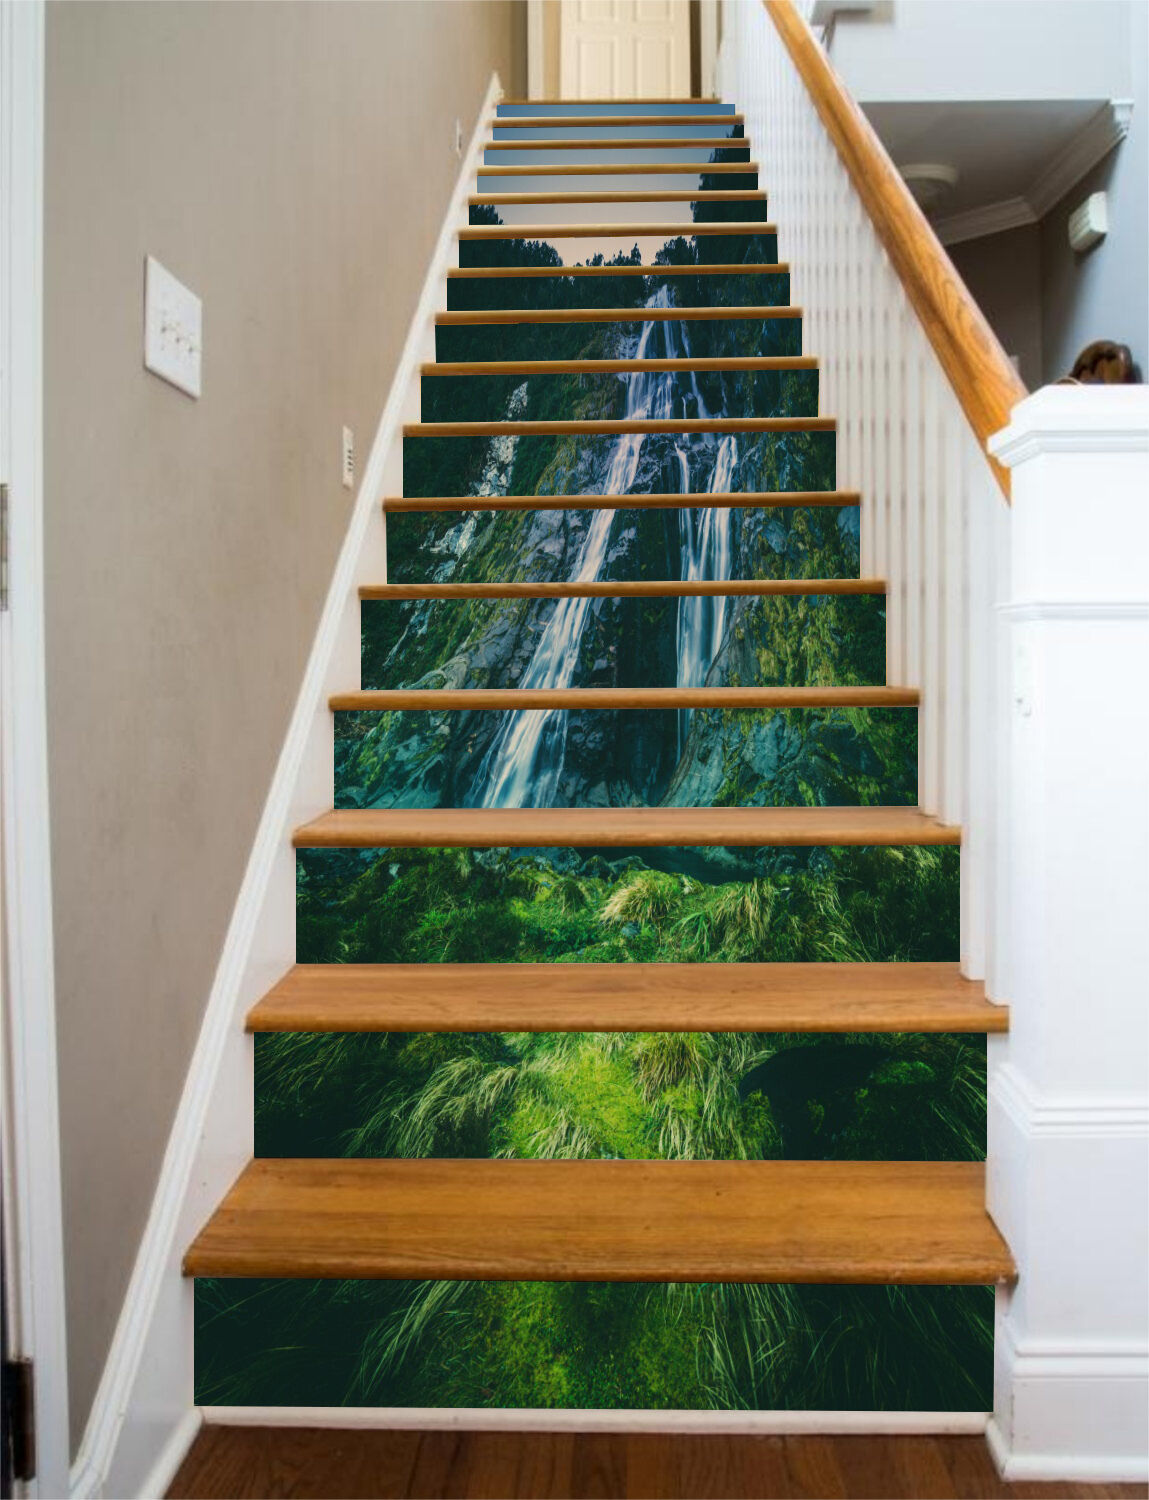 3D Waterfall 74 Stair Risers Decoration Photo Mural Vinyl Decal Wallpaper CA